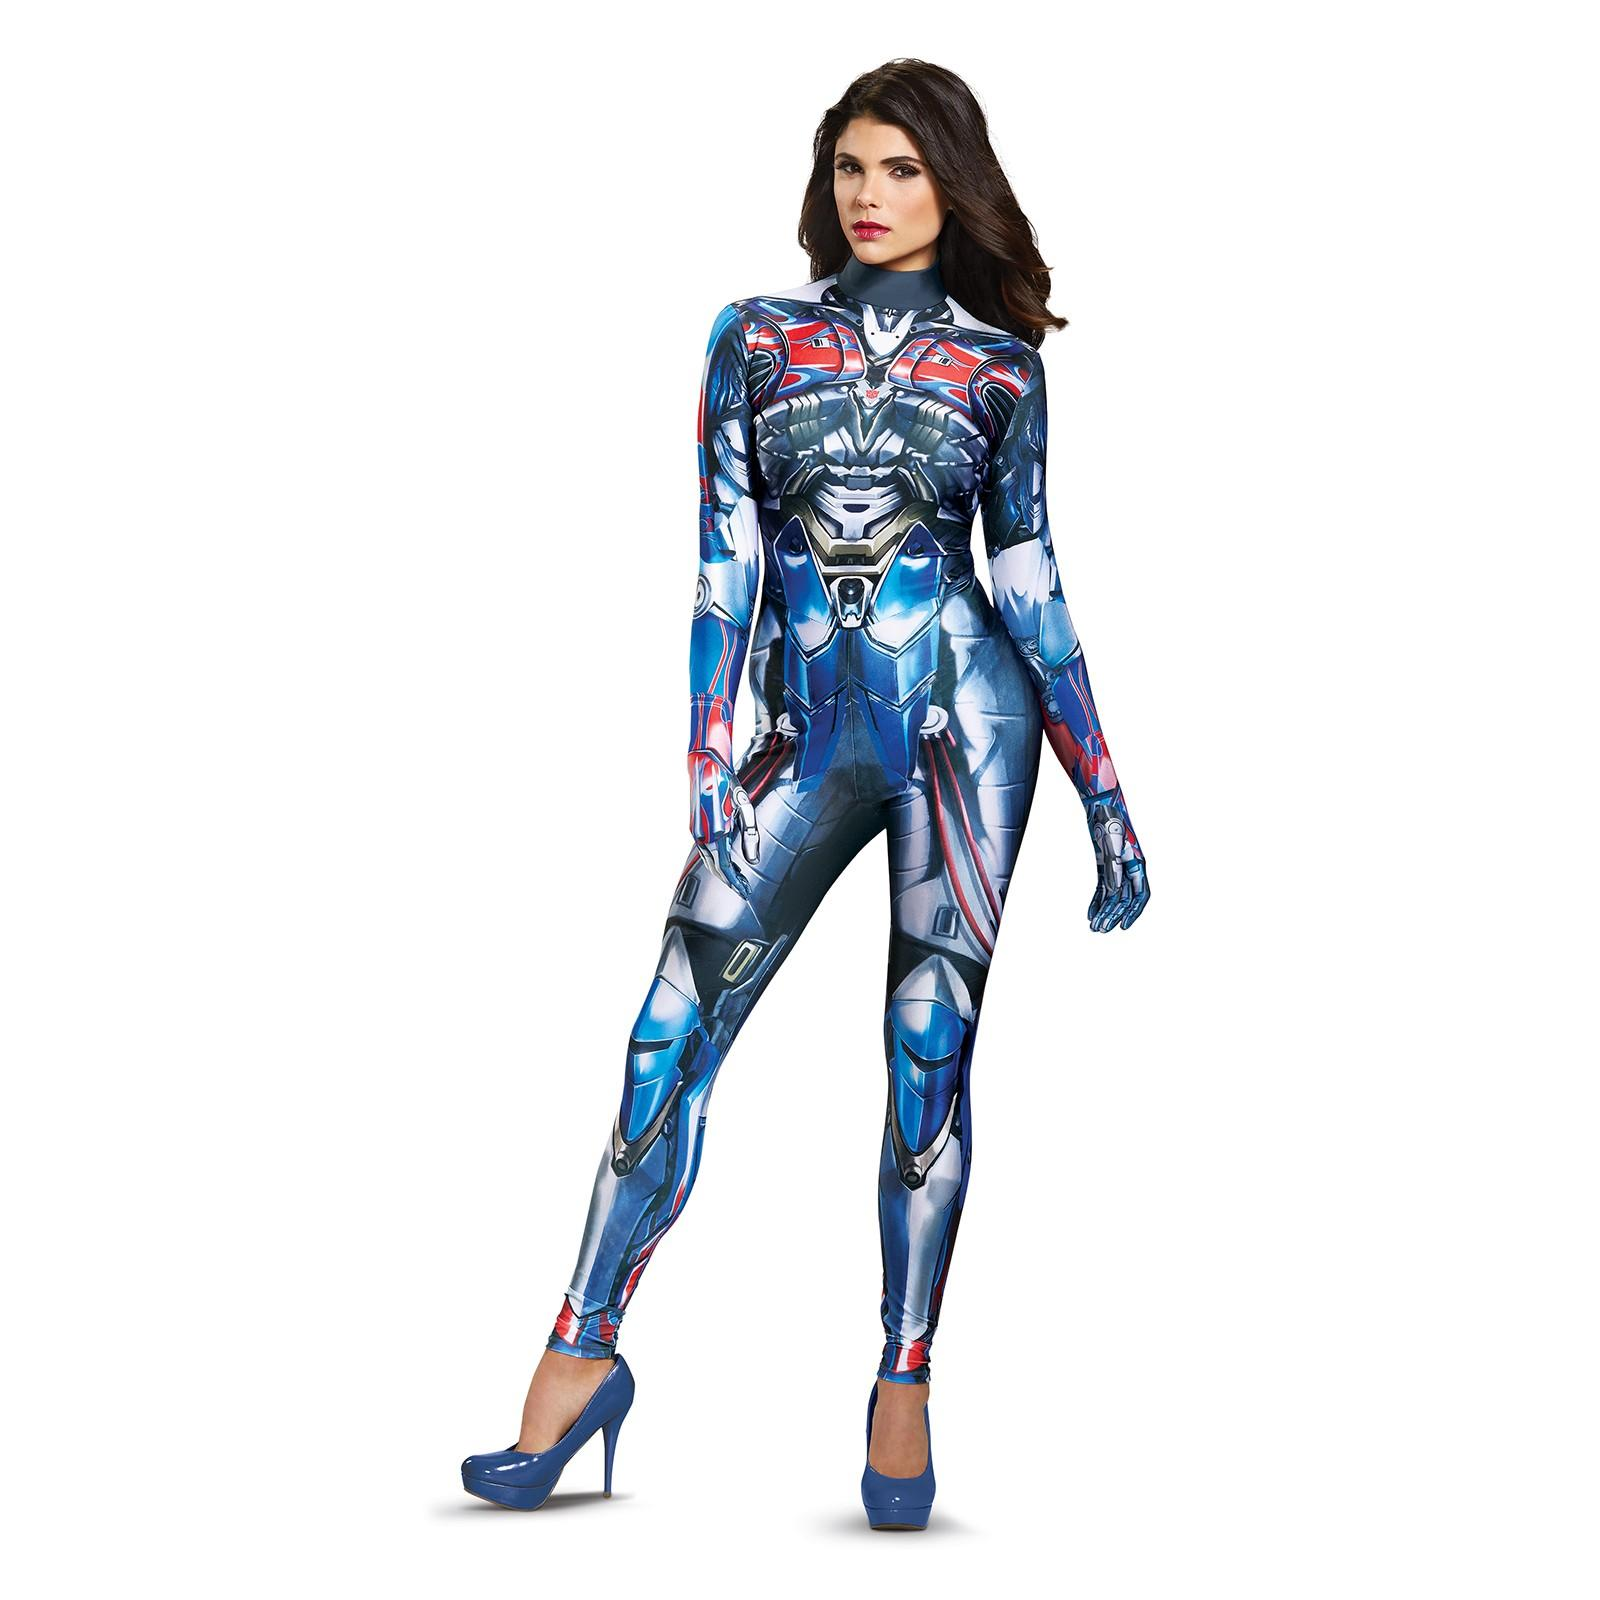 Transformers - Optimus Prime Female Bodysuit Adult Costume